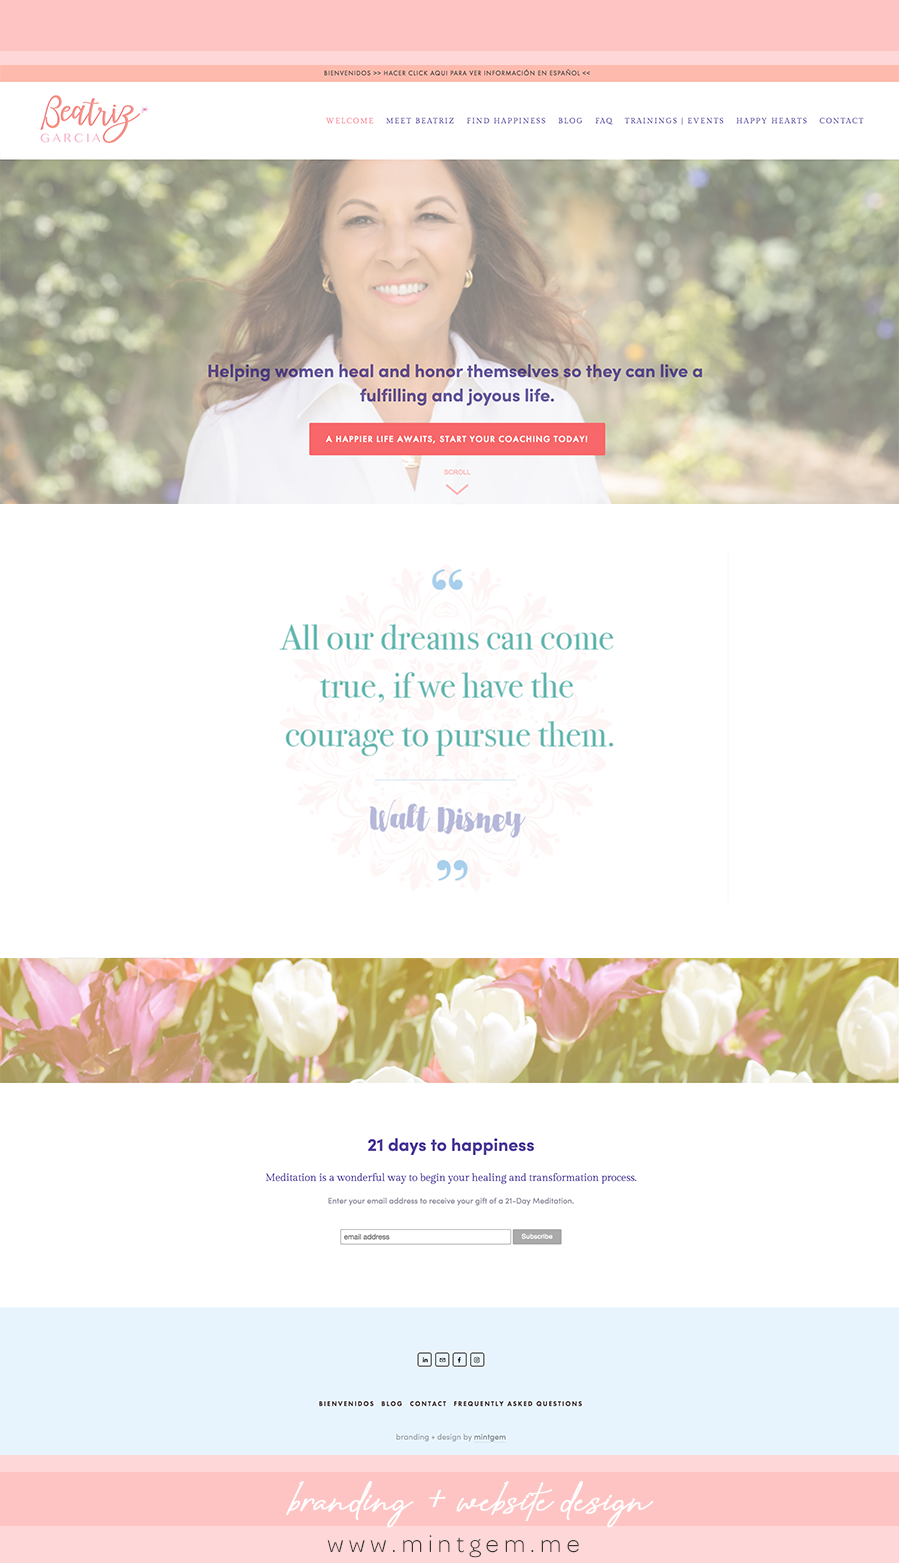 15-branding-mintgem-logo-design-for-SOULFUL-coaches-women-in-business.png